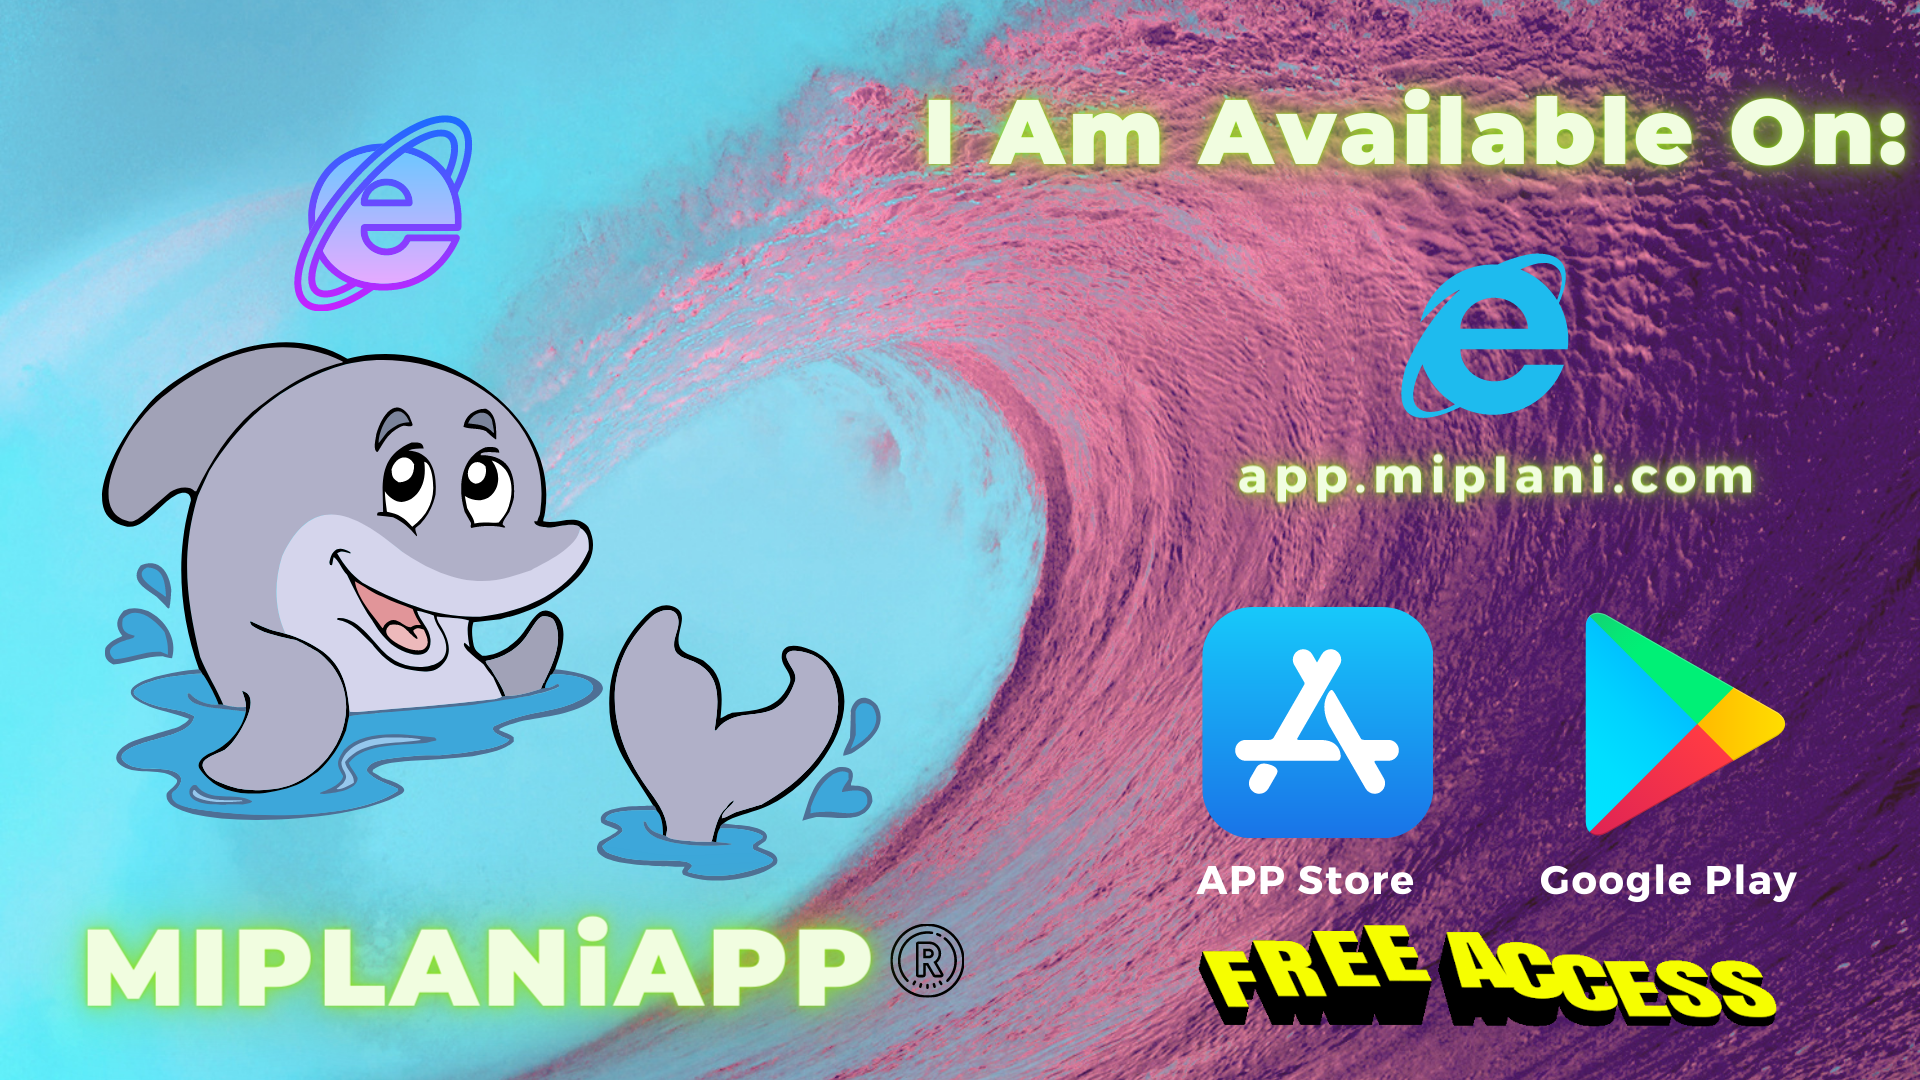 Forget words; Get access to MIPLANiAPP® now to see how easy it is to use and to create an exciting business that delivers unparalleled results.